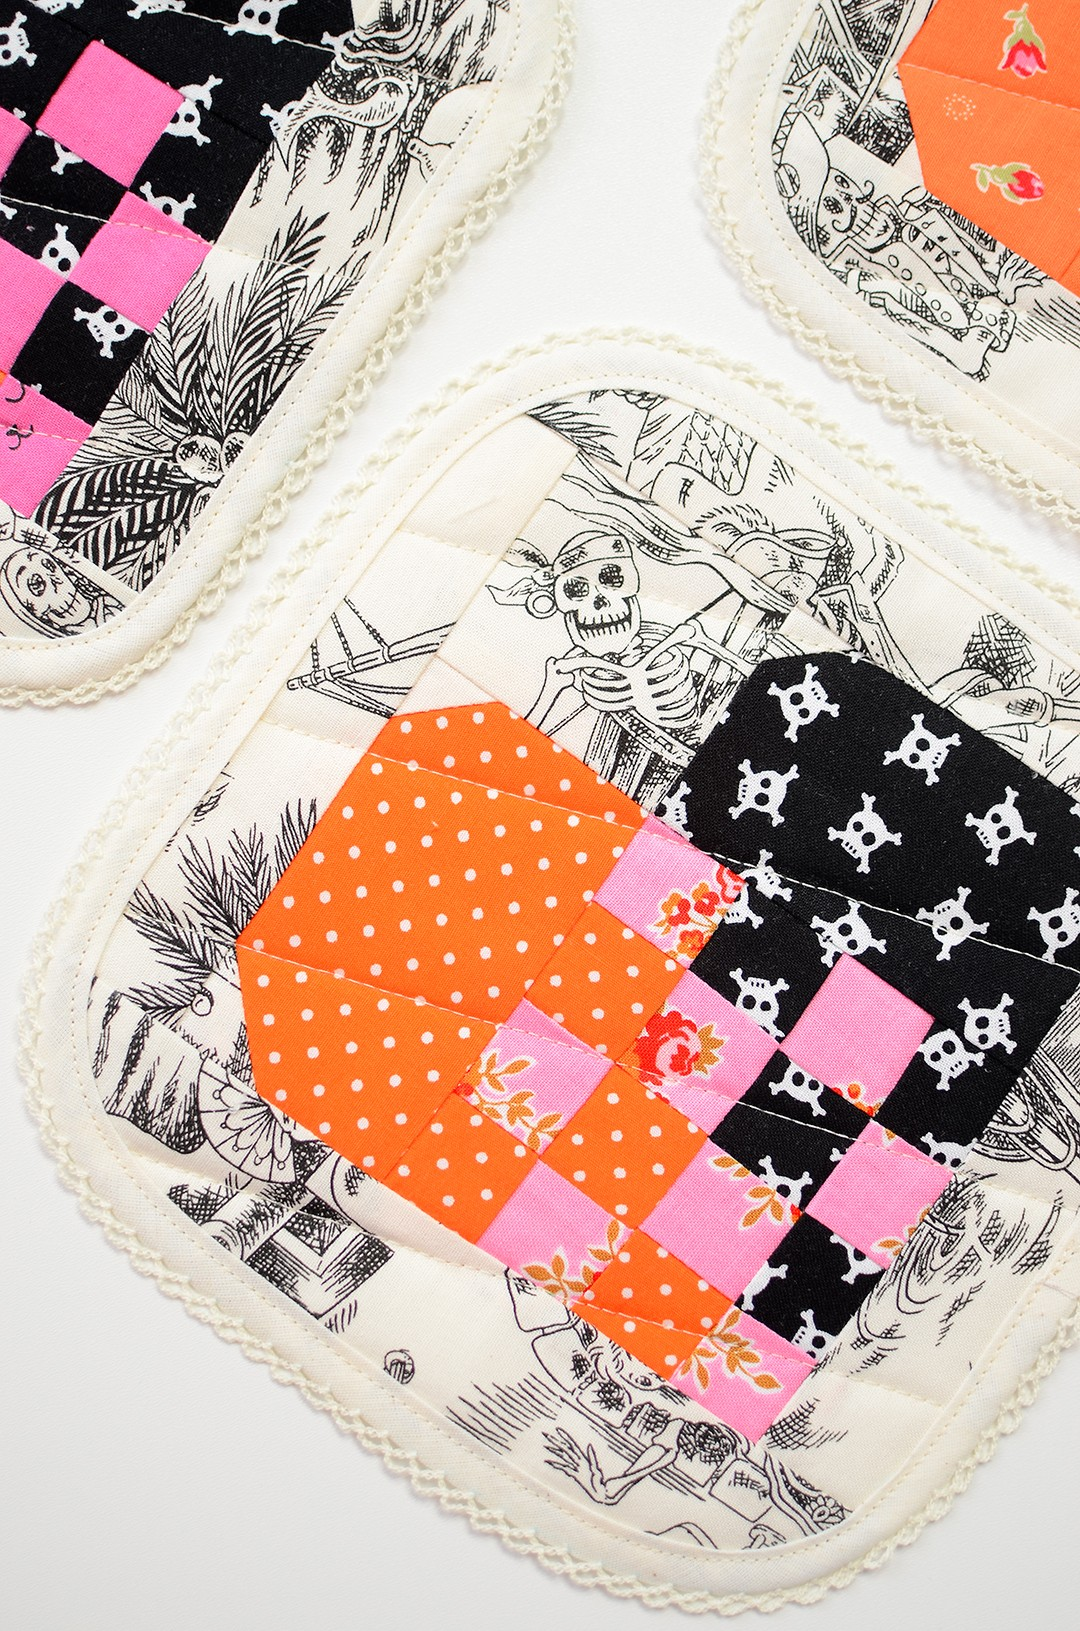 Quilted coasters for Halloween